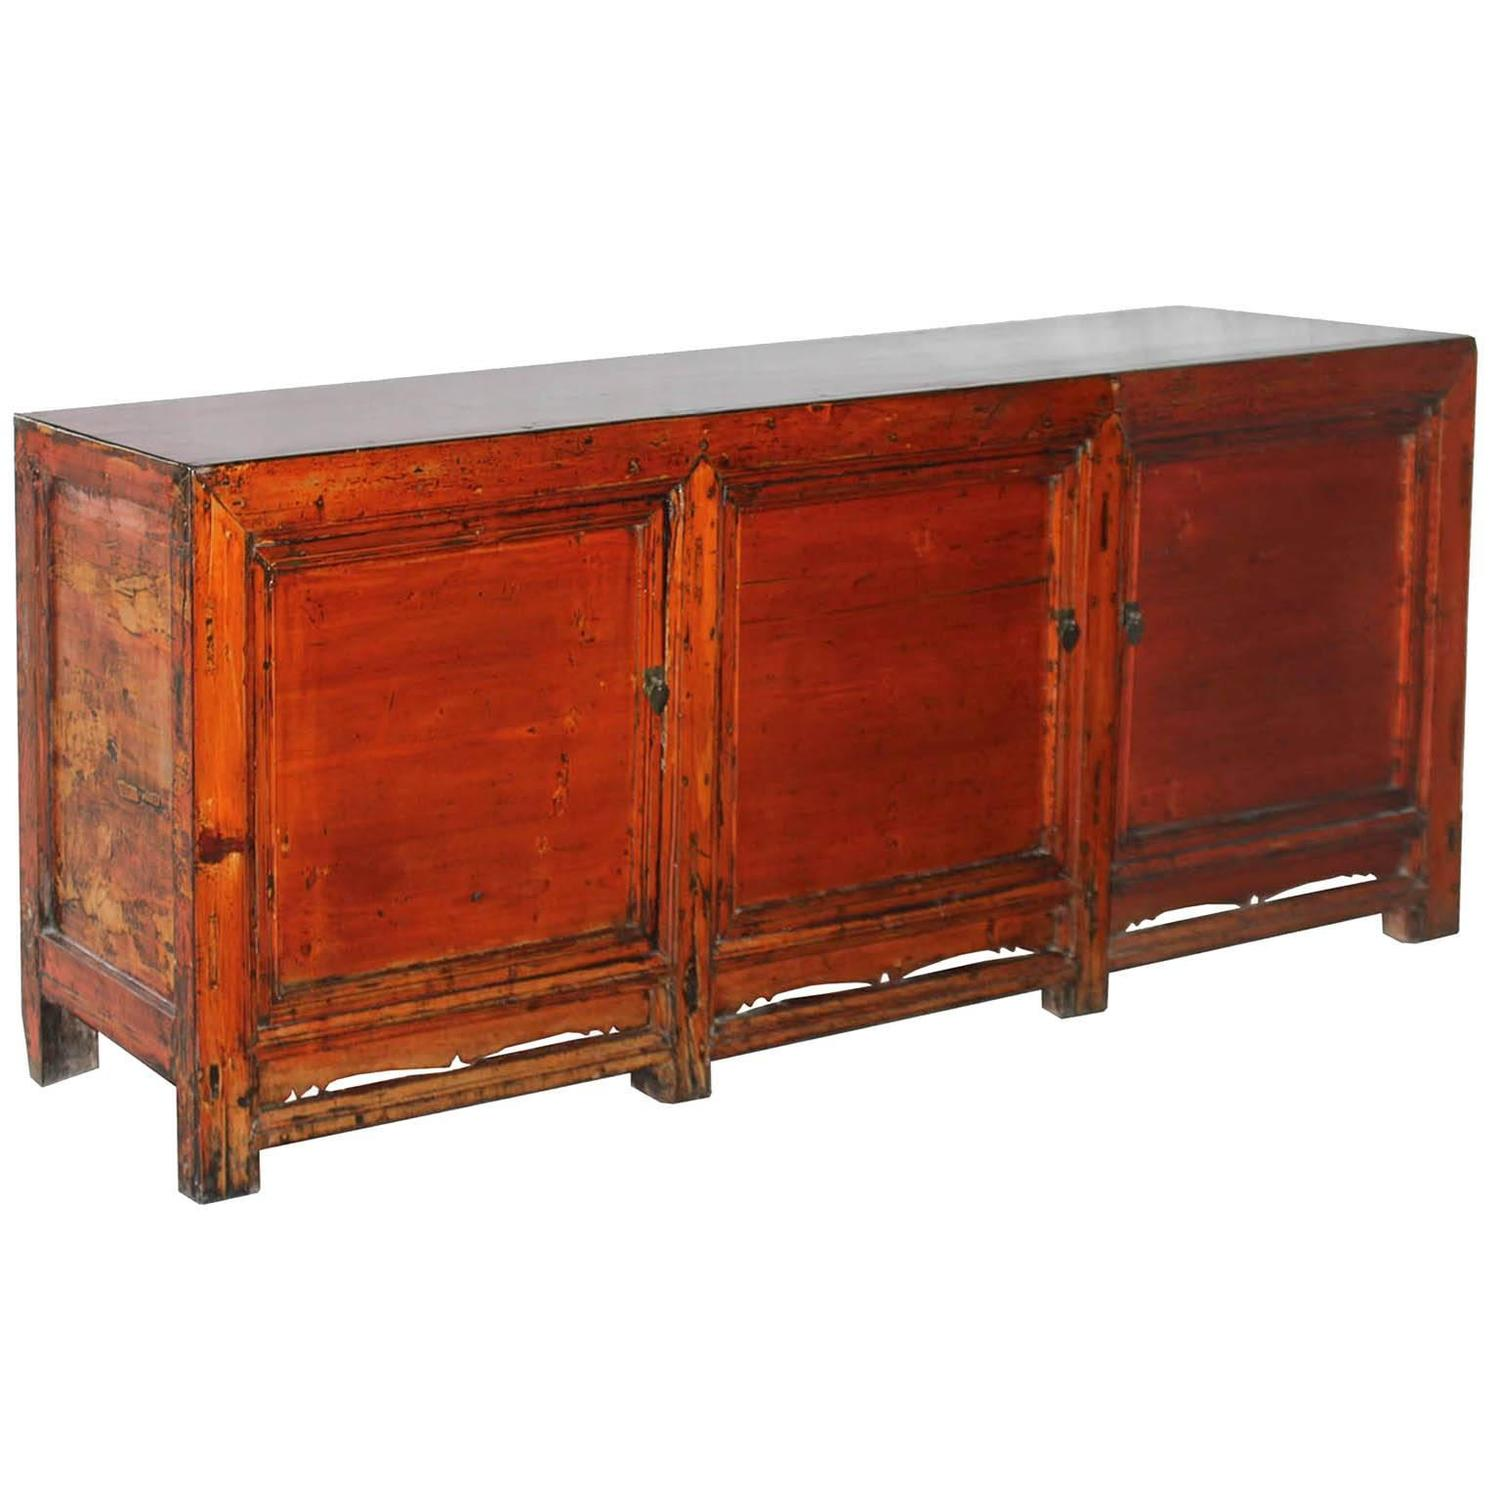 Orange gansu sideboard for sale at 1stdibs for Sideboard orange